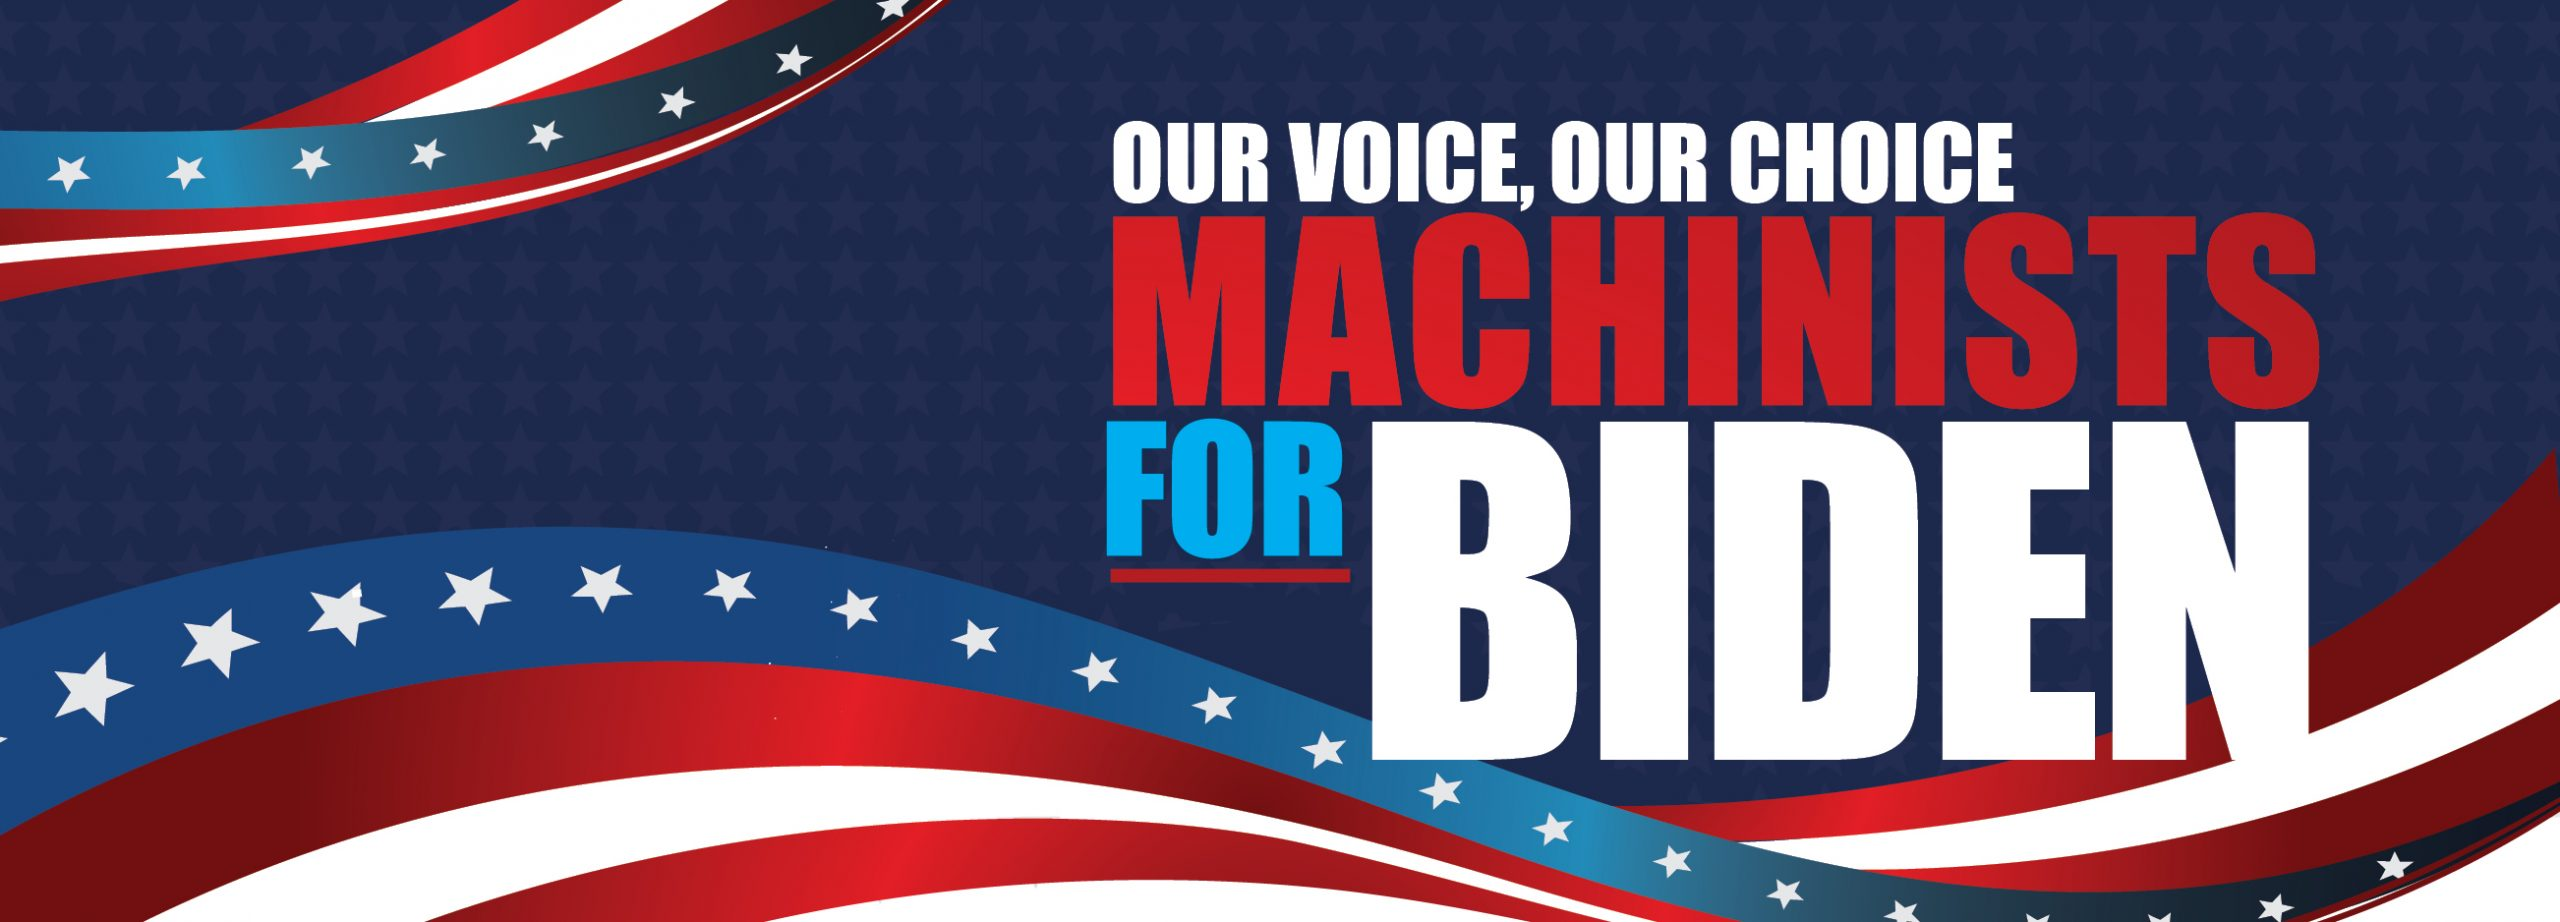 OUR VOICE OUR CHOICE: MACHINISTS FOR BIDEN